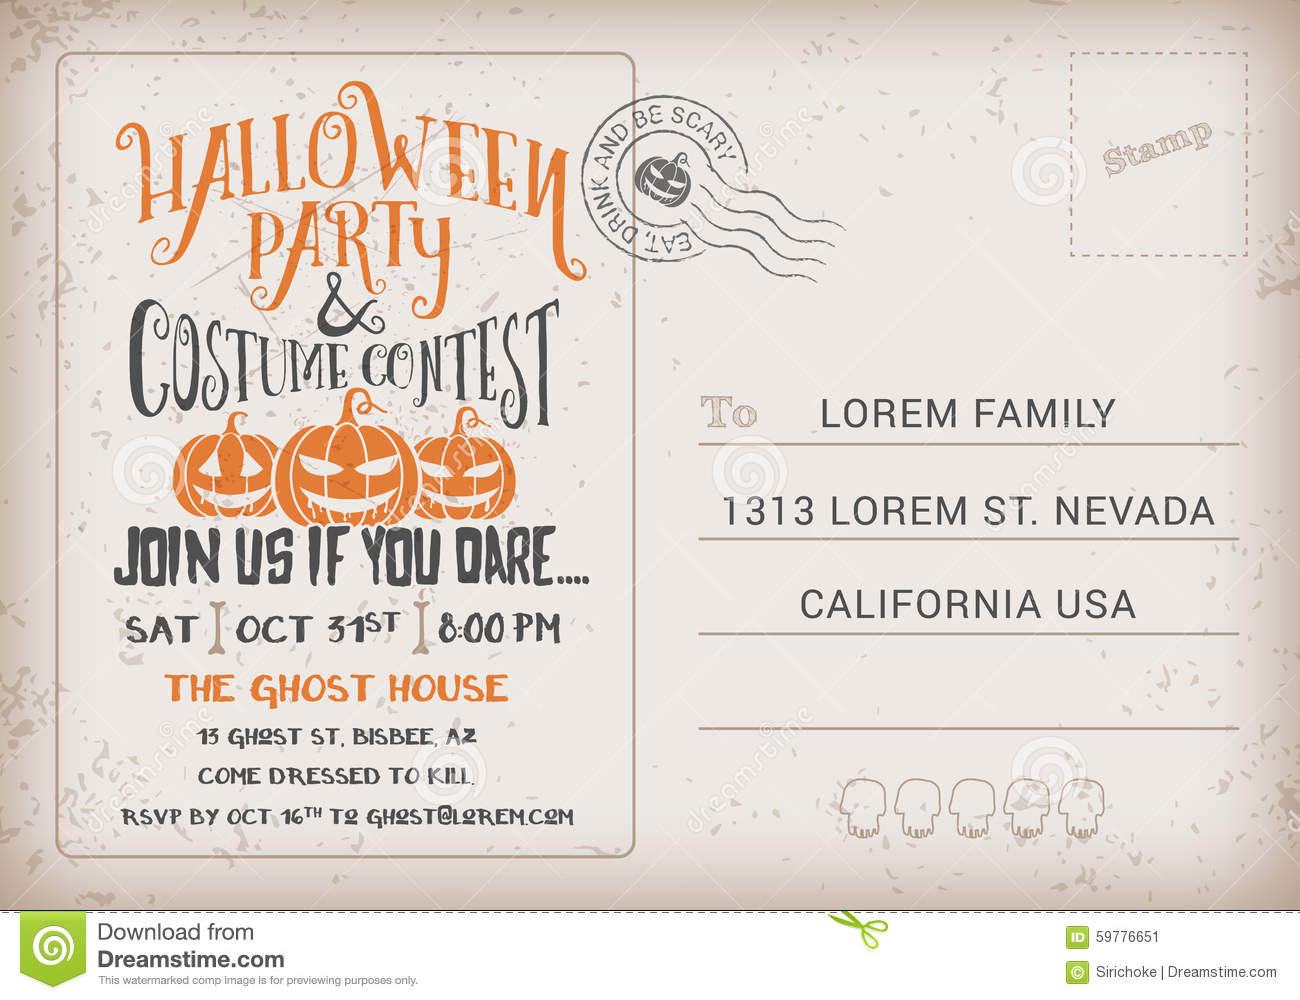 Halloween Party And Costume Contest Invitation Template.  Party Rsvp Template